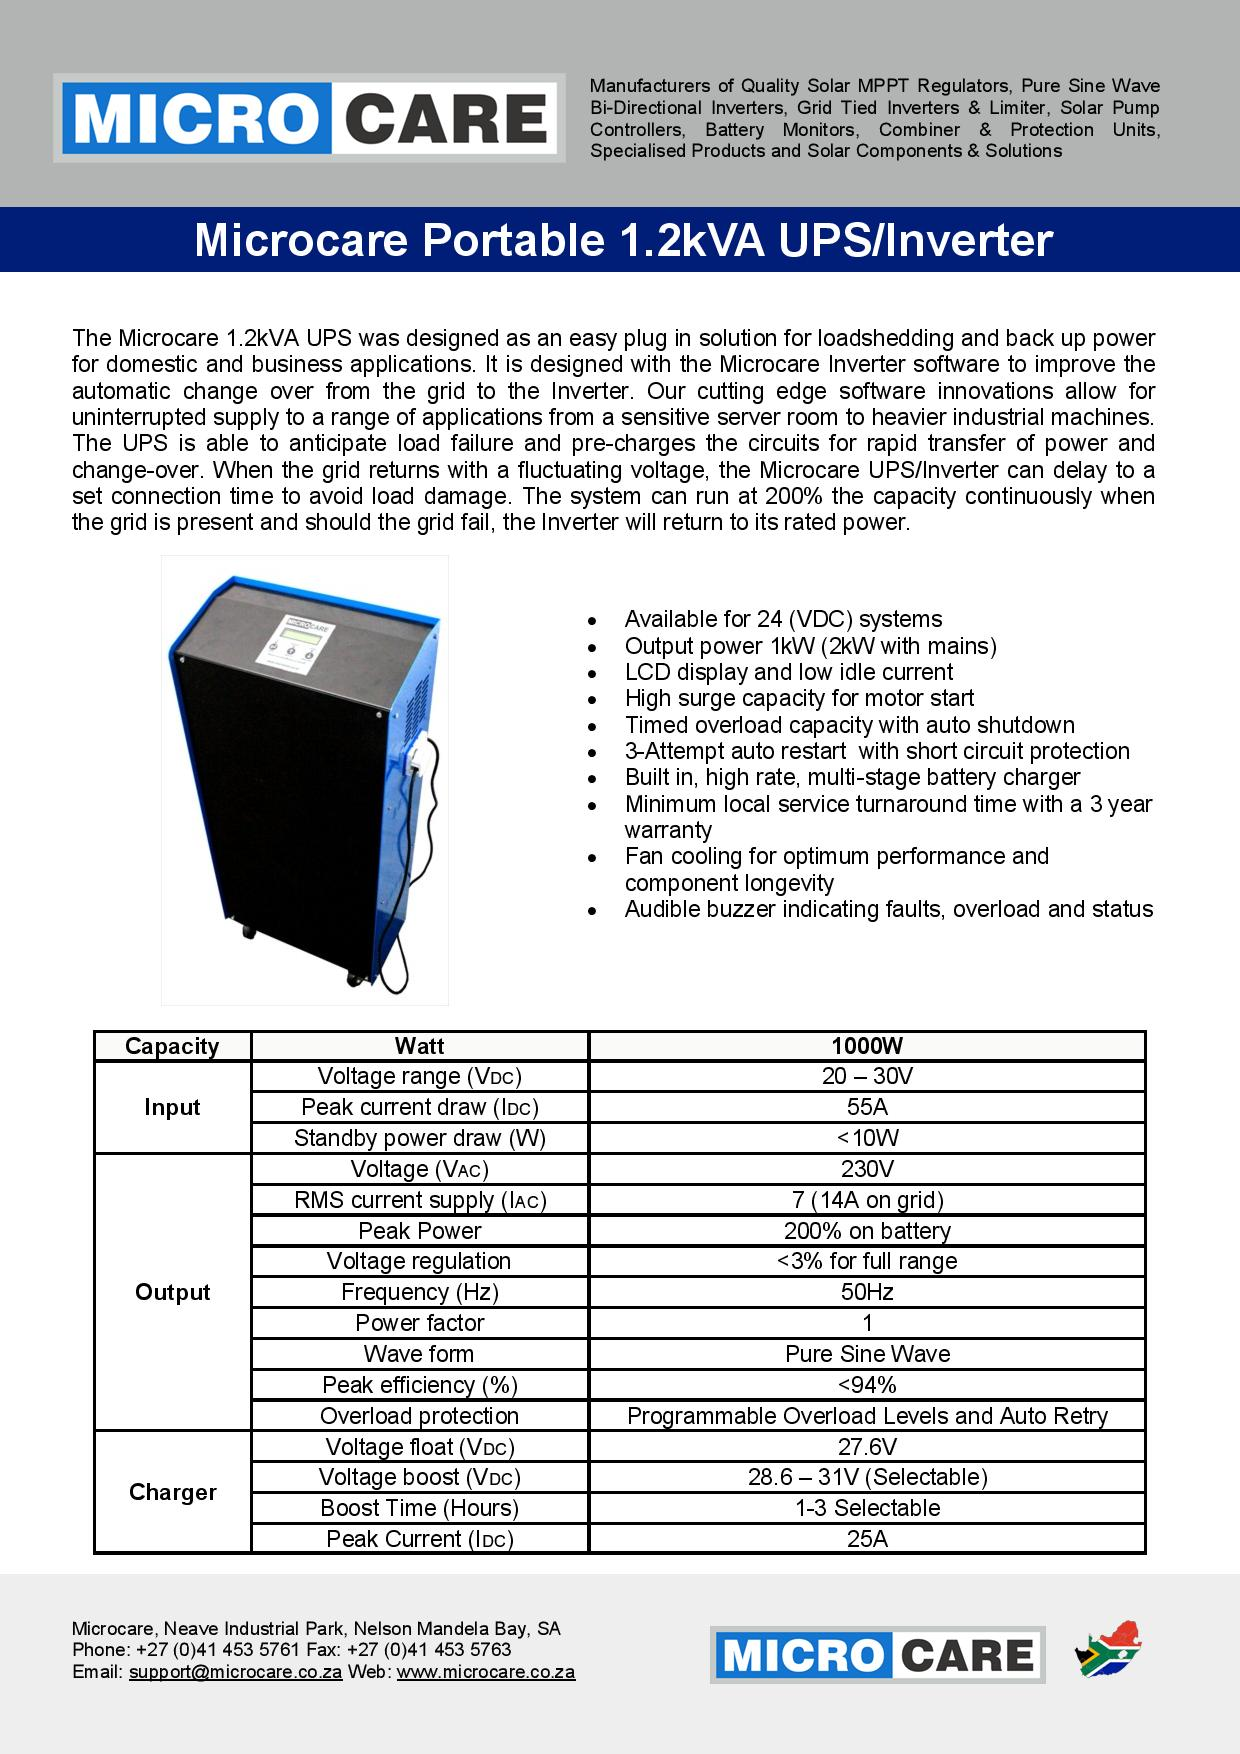 Enserve Energy Products Gridtie Inverter Metering Diagram For More Information Download The Spec Document